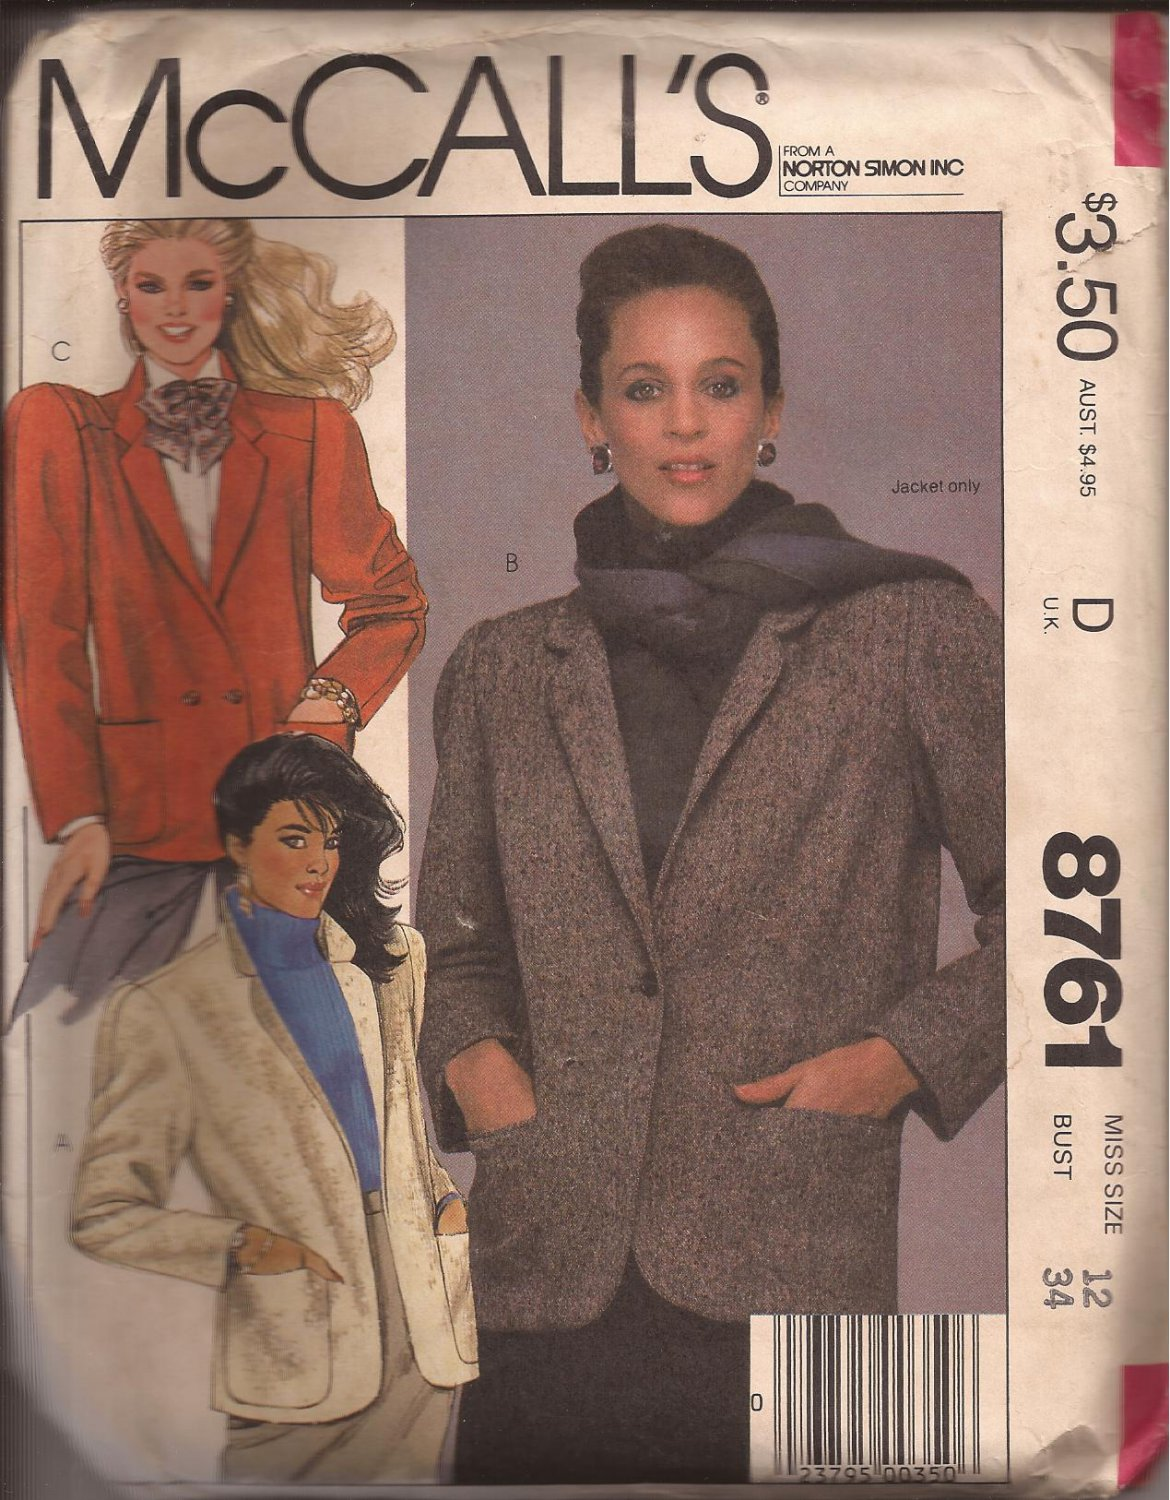 McCalls 87761 (1983) Unlined Jacket Patch Welt Pockets Single Double Breasted Pattern Size 12 UNCUT